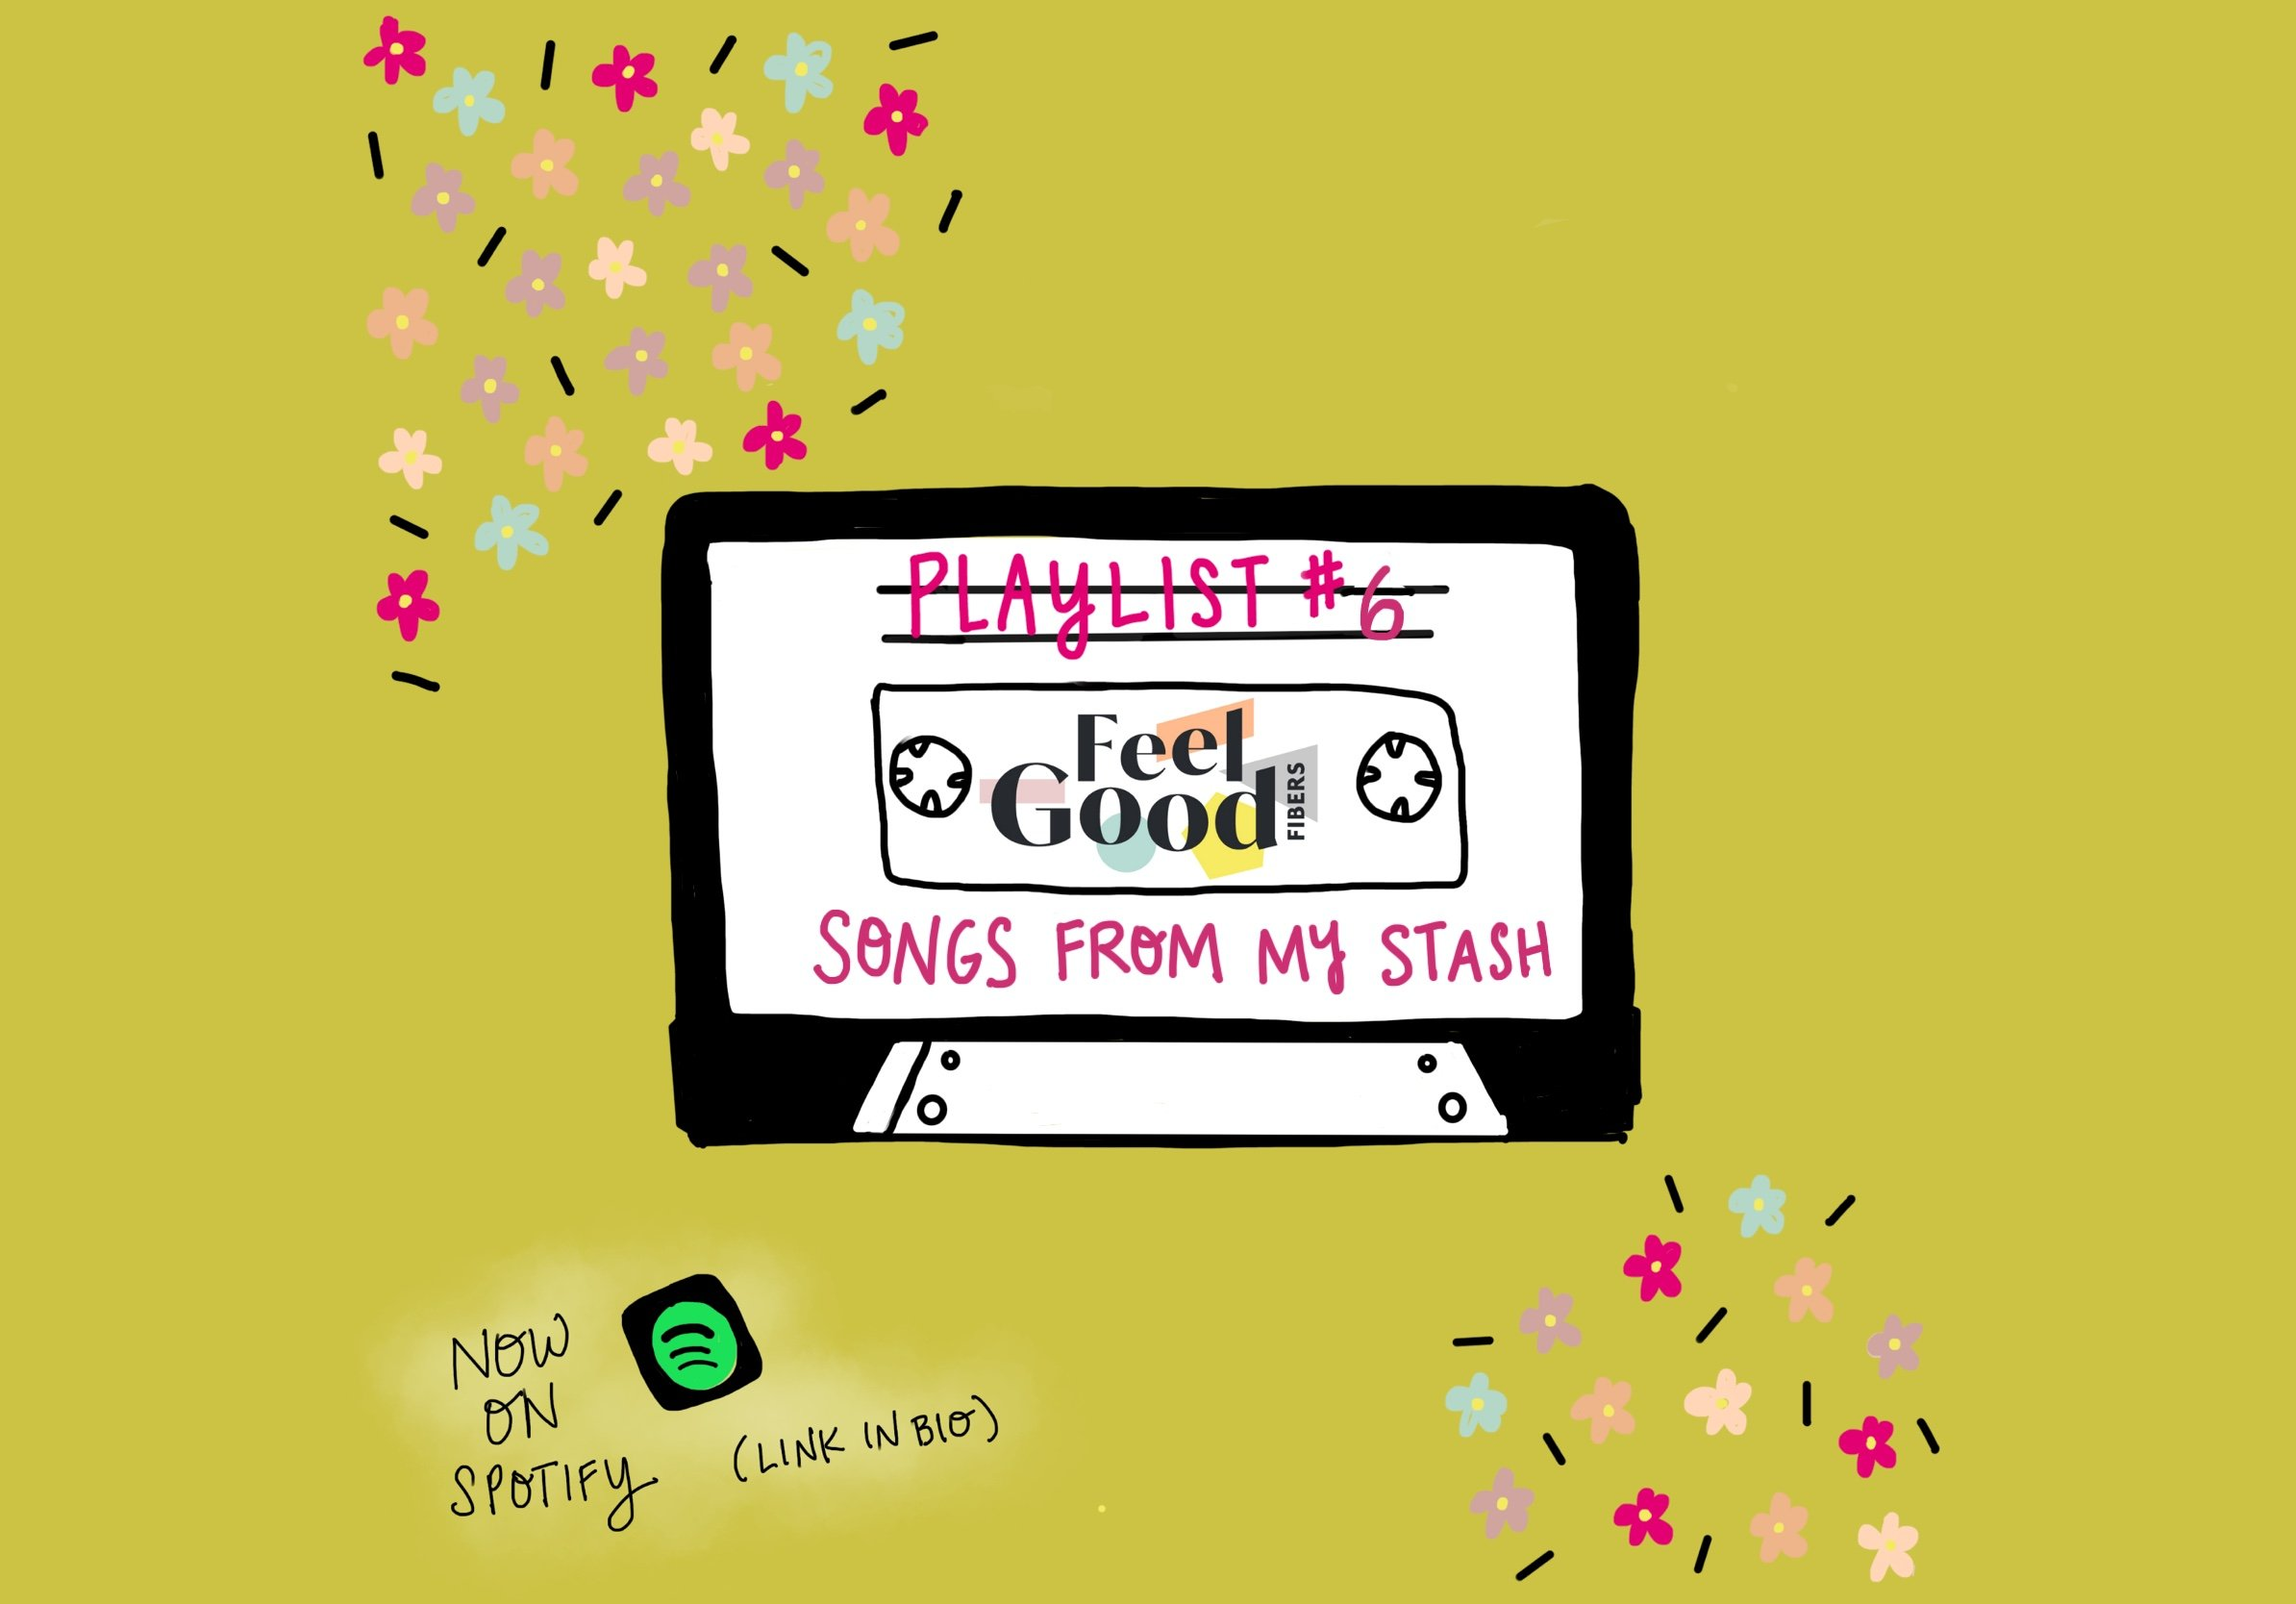 FGF Playlist #6 Songs From My Stash Pandemic Playlist by FeelGood Fibers